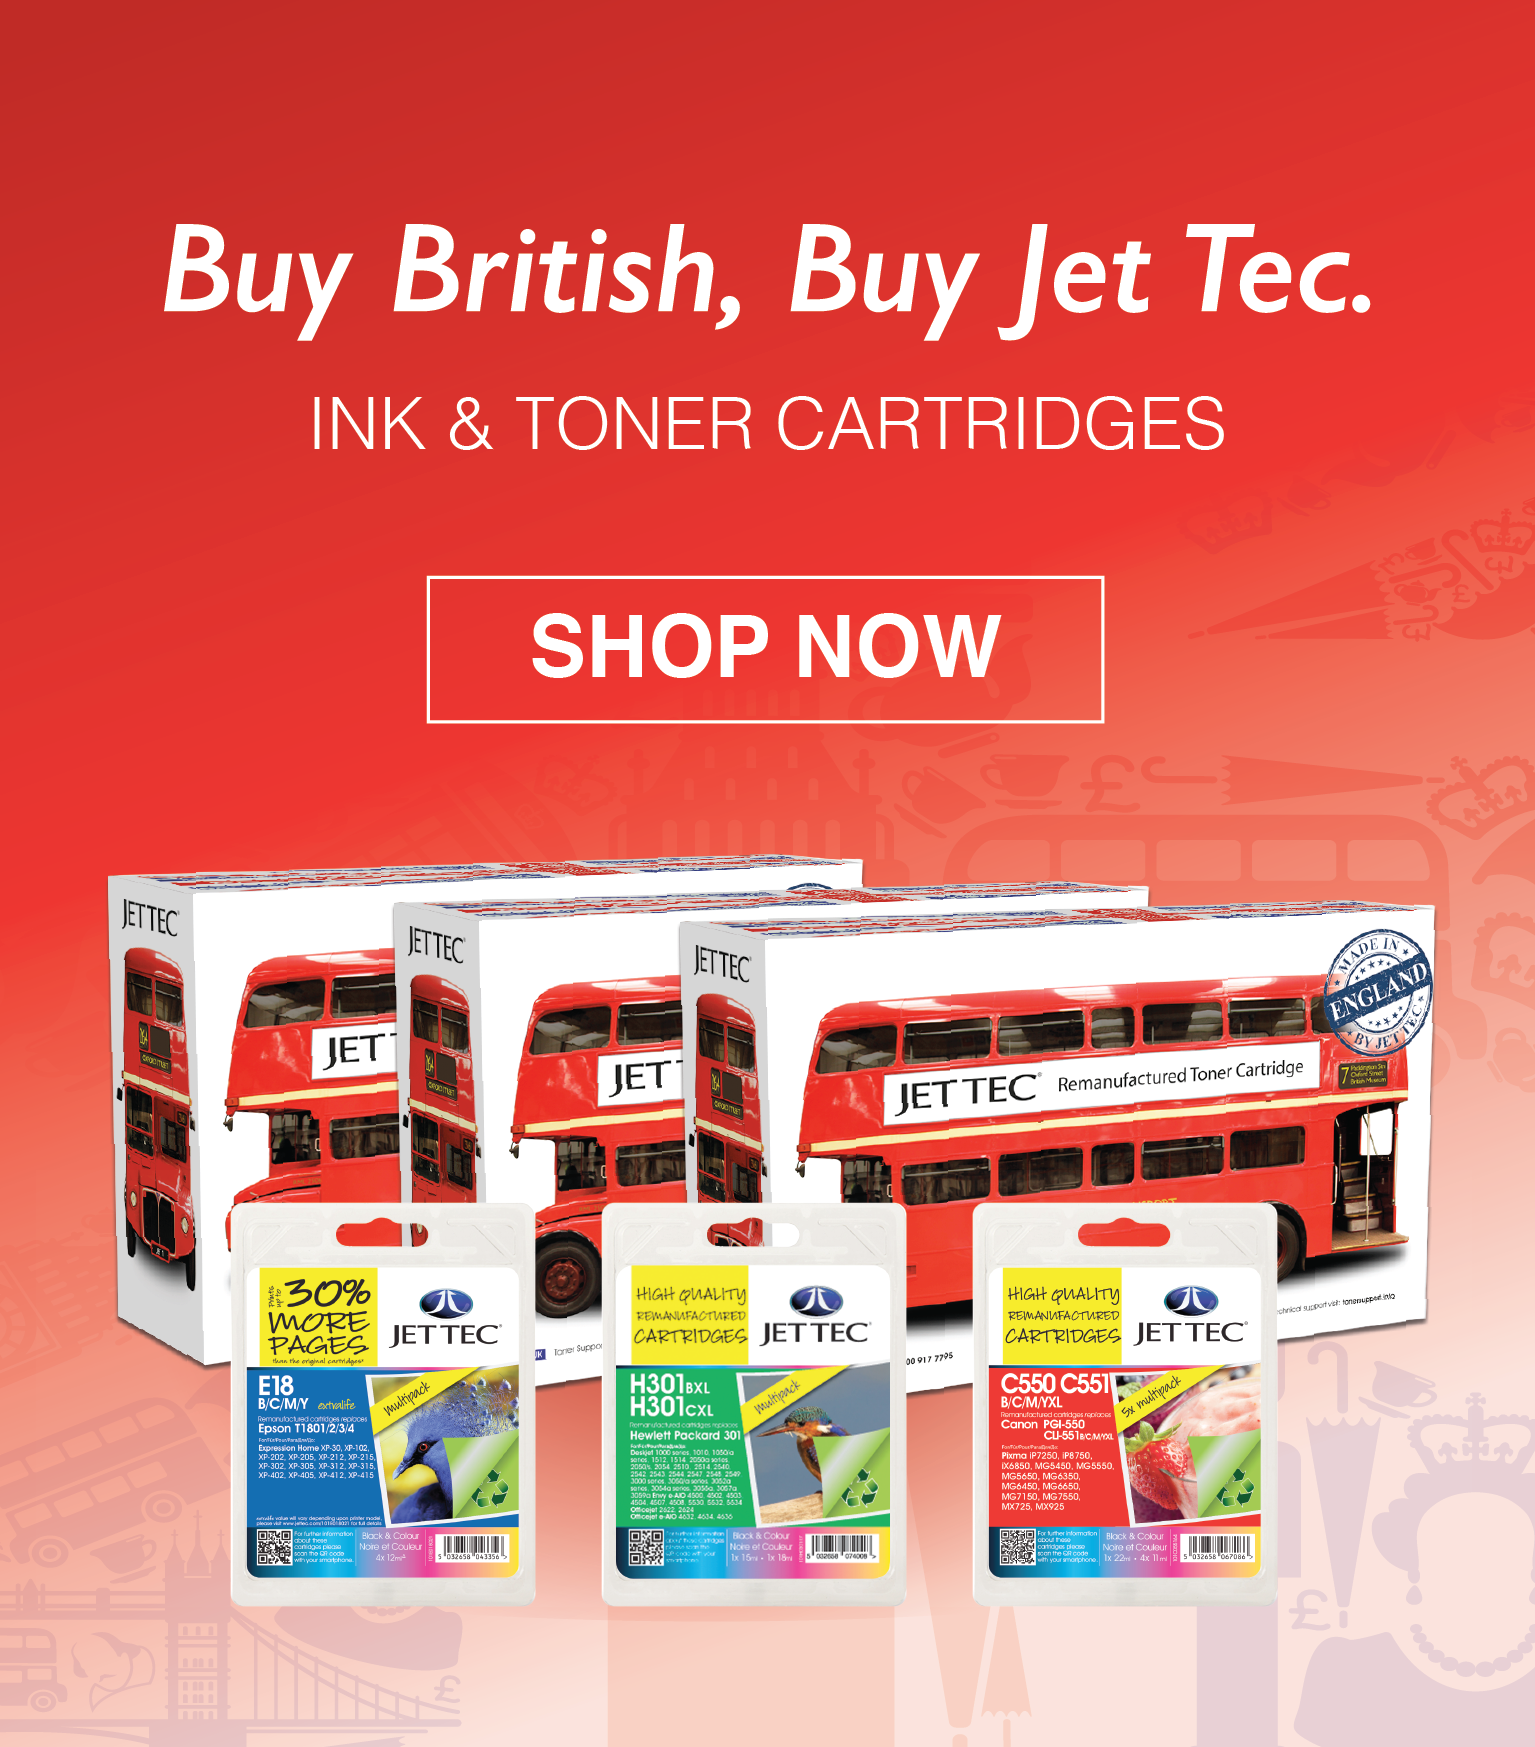 Buy British, Buy Jet Tec printer cartridges!